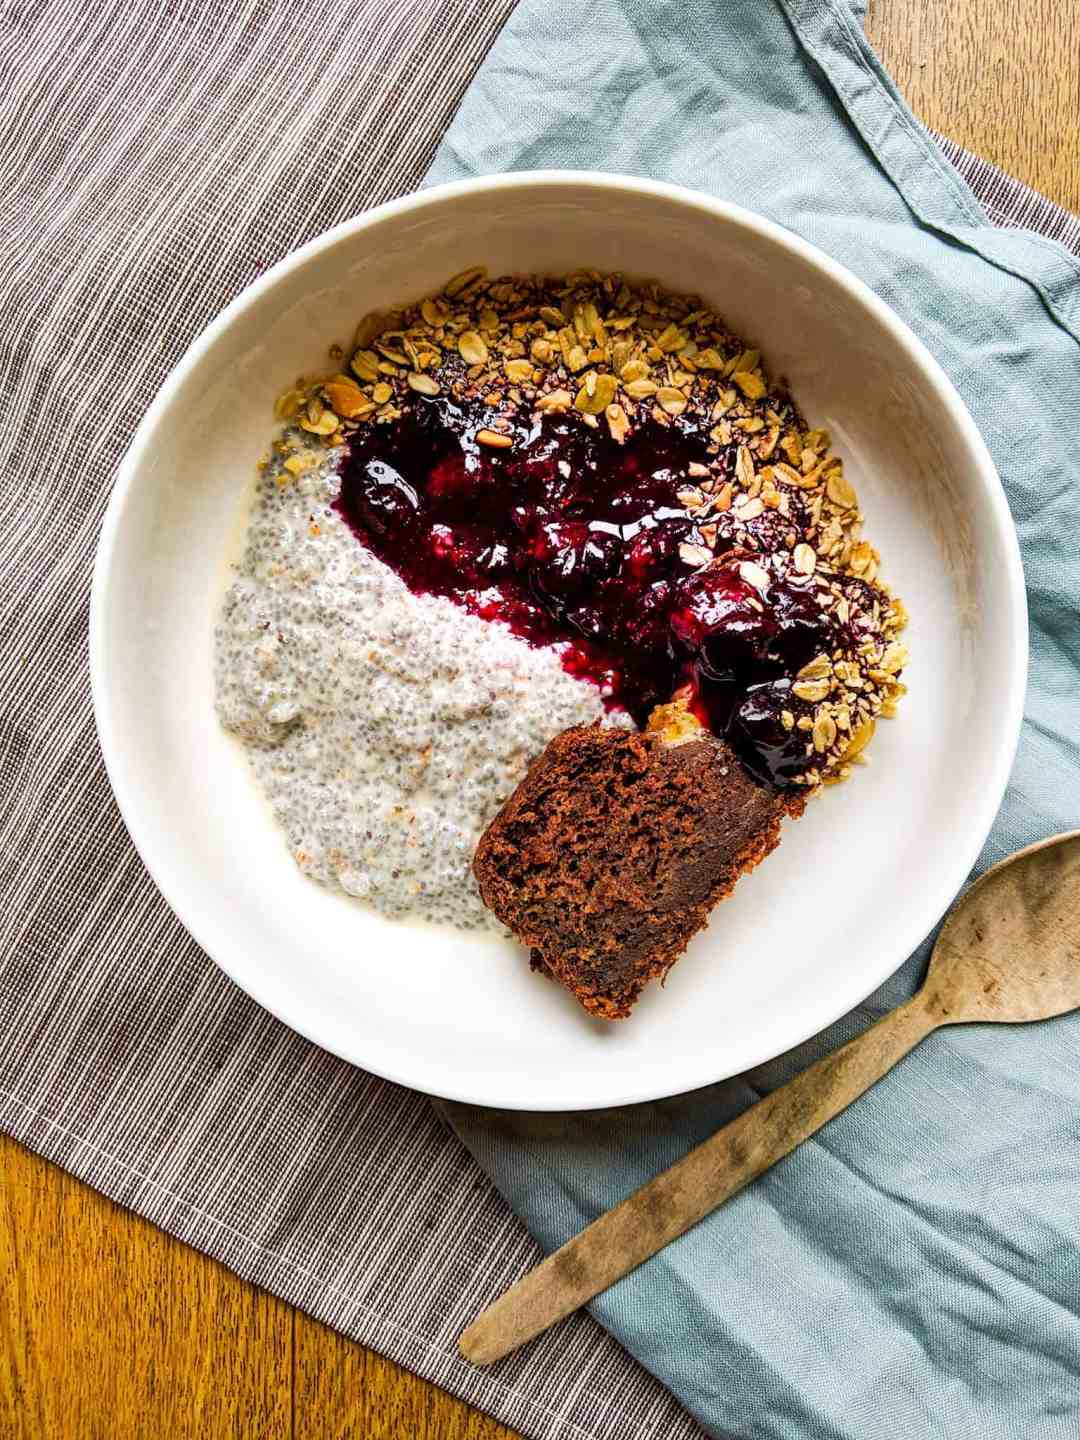 chia seed pudding with stewed berries in a white bowl with a wooden spoon beside it